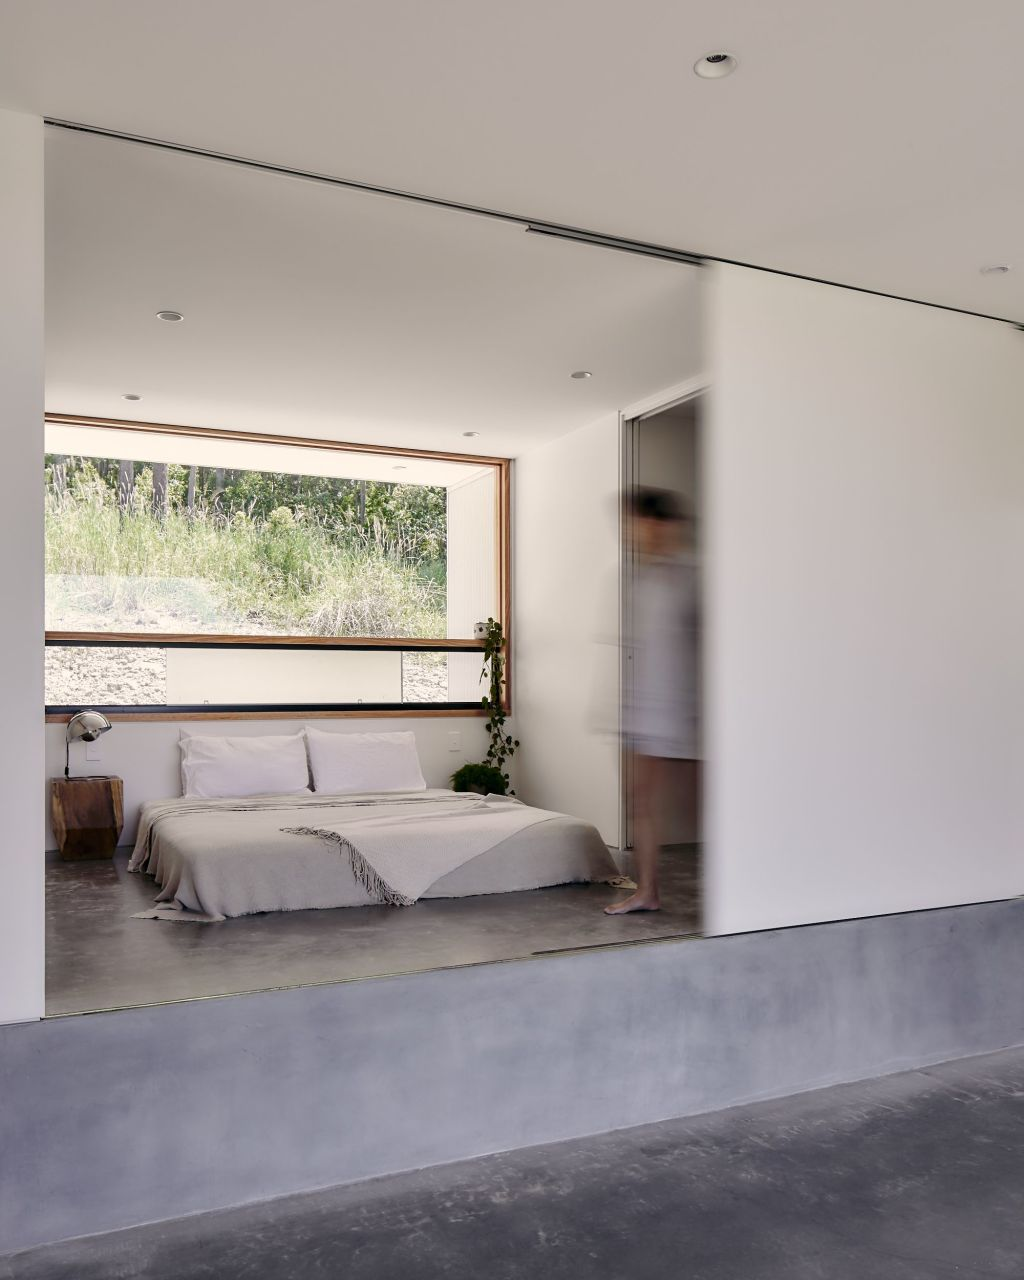 A Sunshine Coast designed for the views by Atelier Chen Hung. The sublime sleeping alcove raised on a platform and therefore under a lower ceiling.